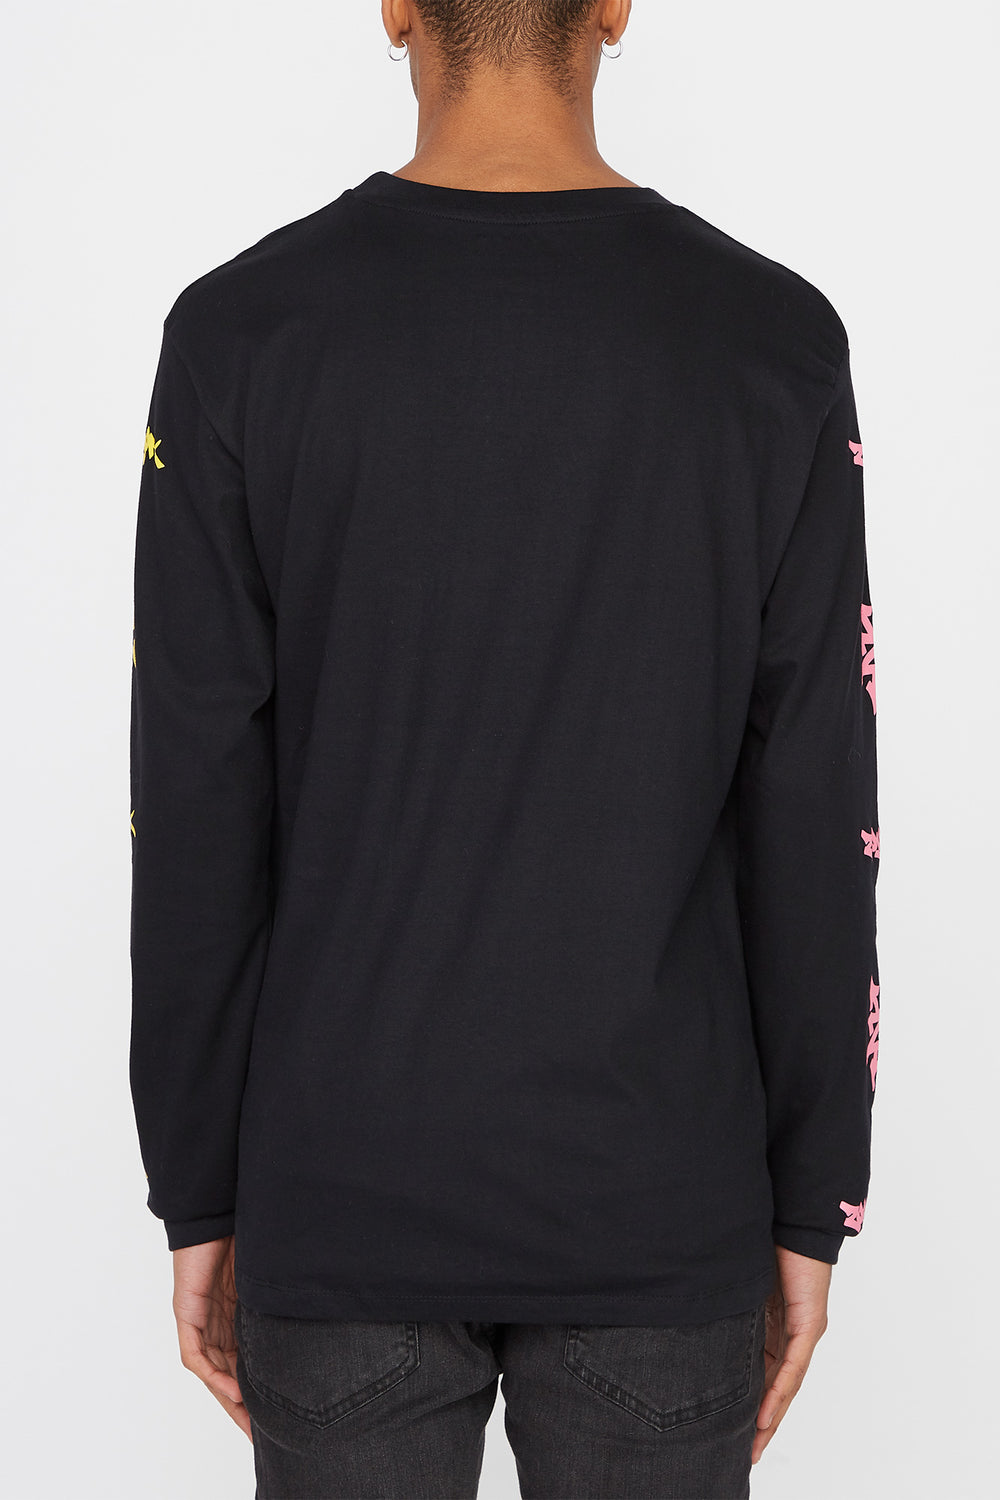 Zoo York Mens Practice Truth Long Sleeve Shirt Black